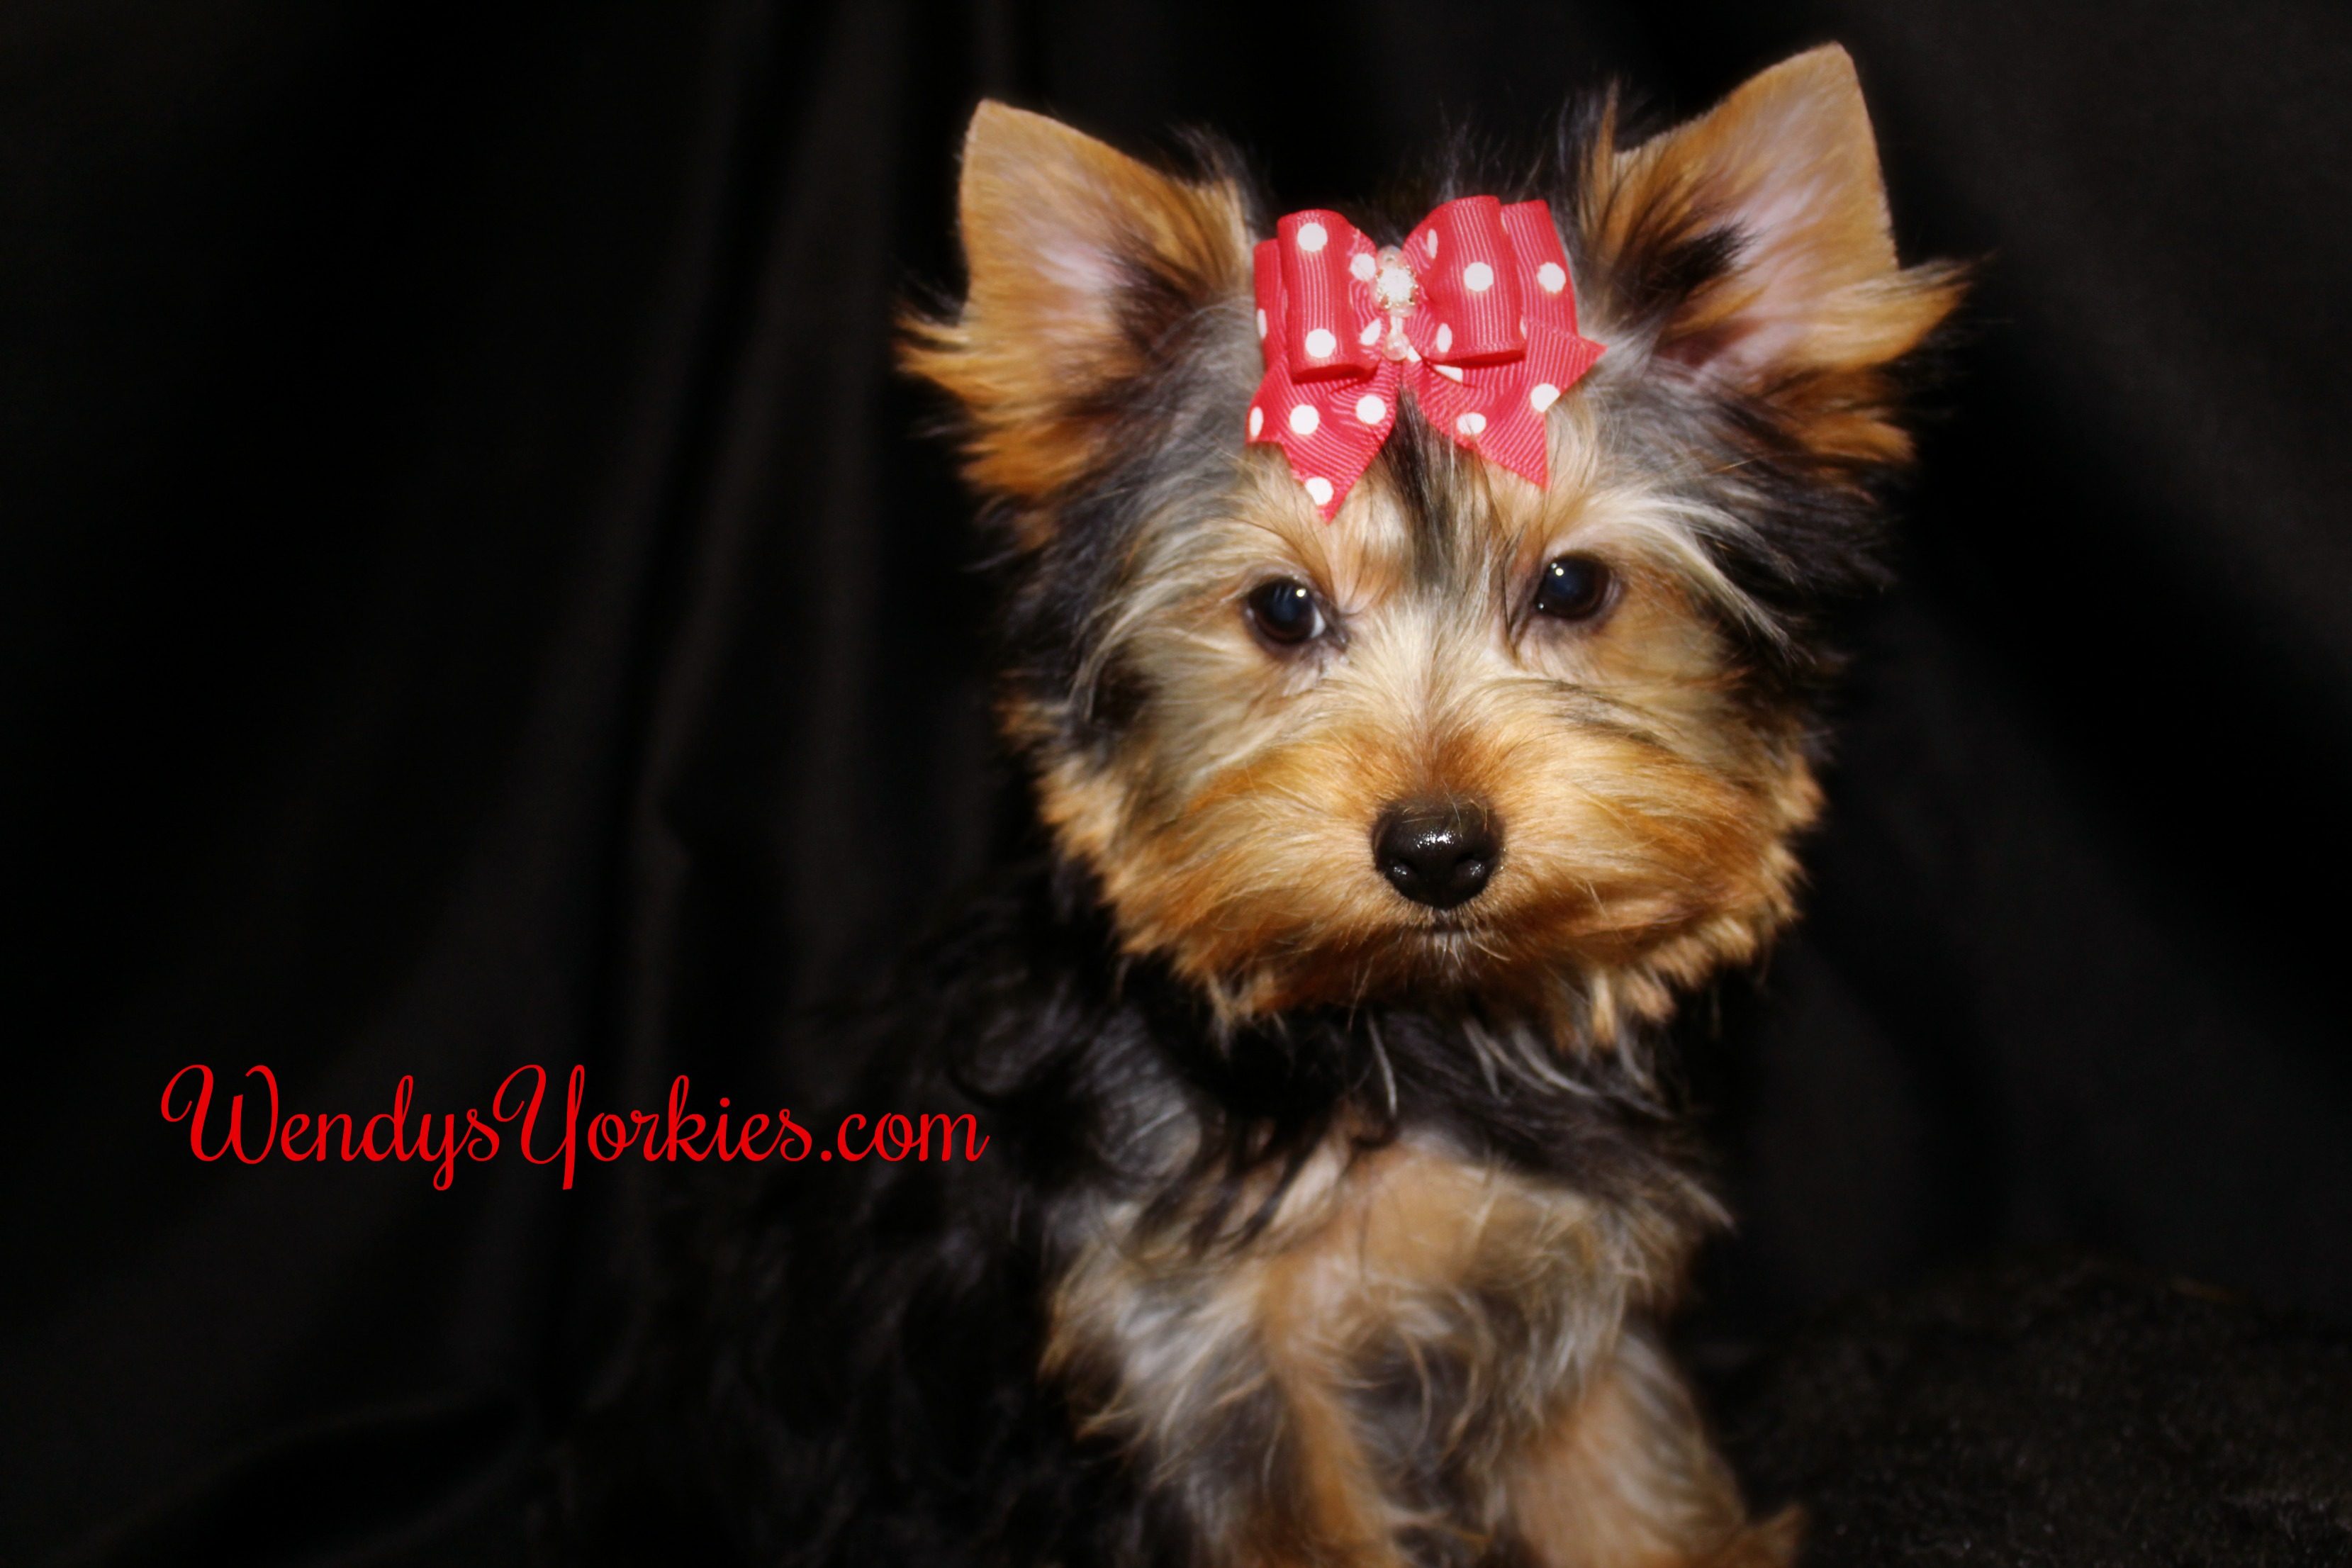 Toy Yorkie puppies for sale in Texas, WendysYorkies, Holly